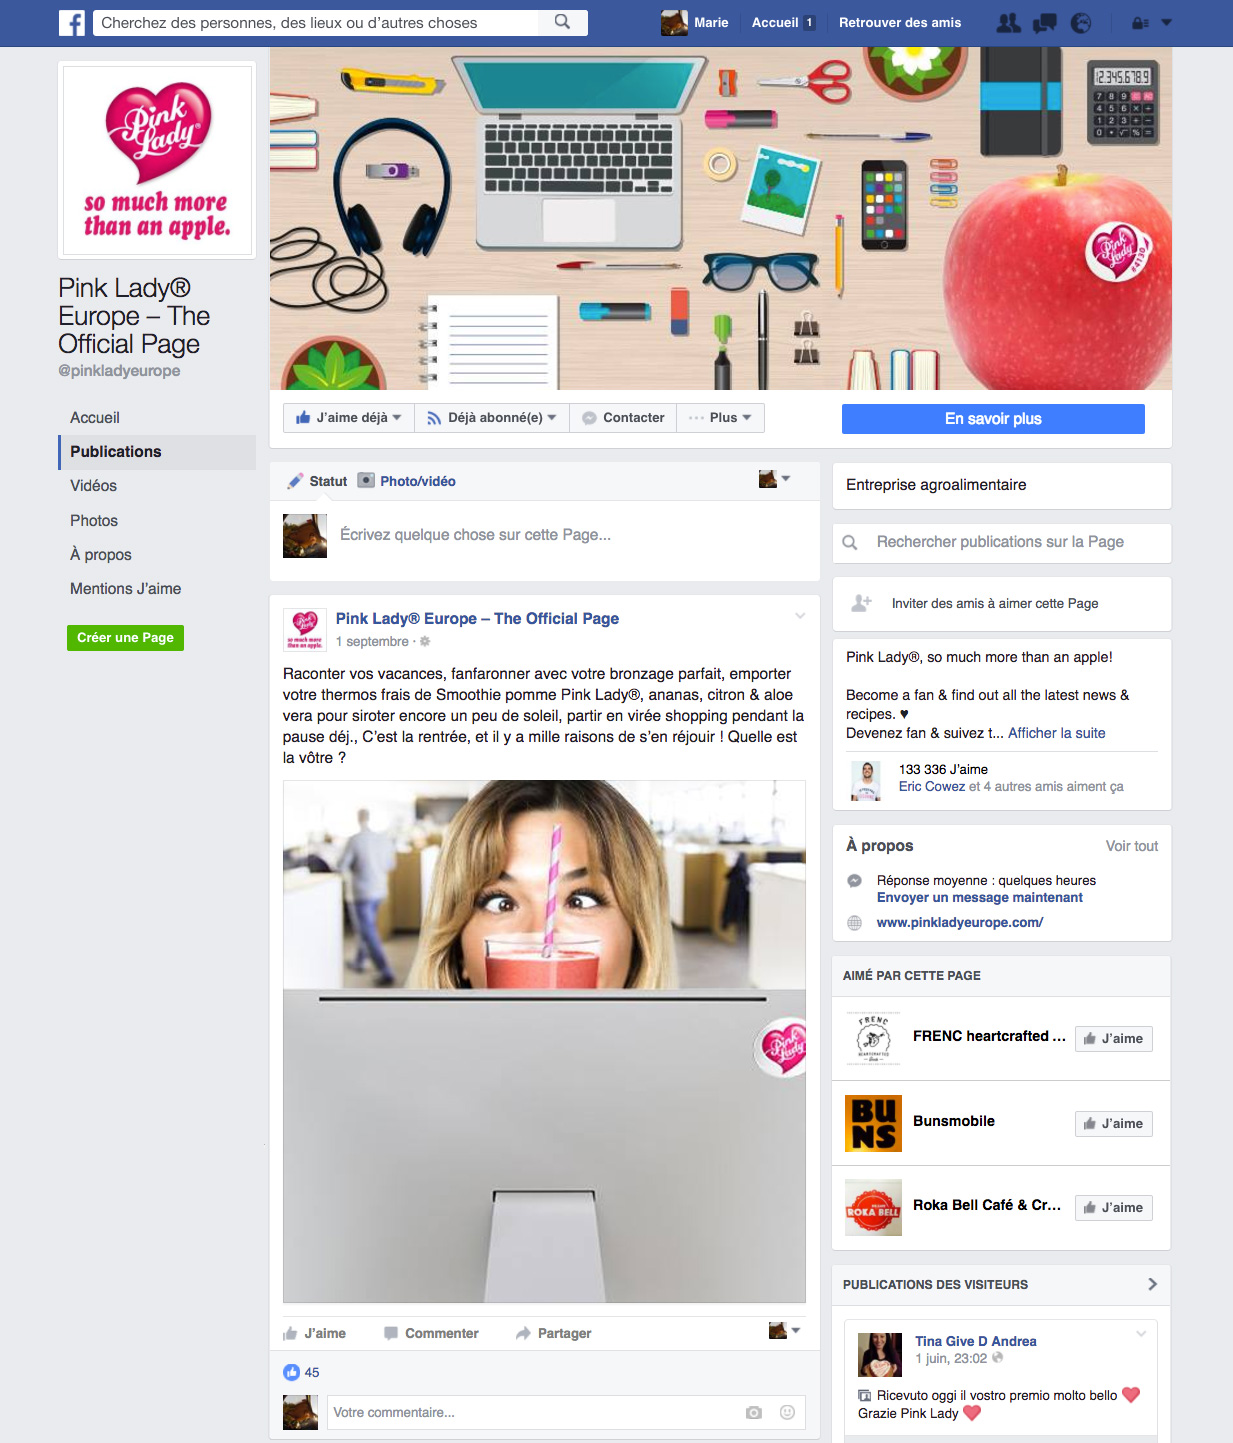 Pink Lady Facebook Page